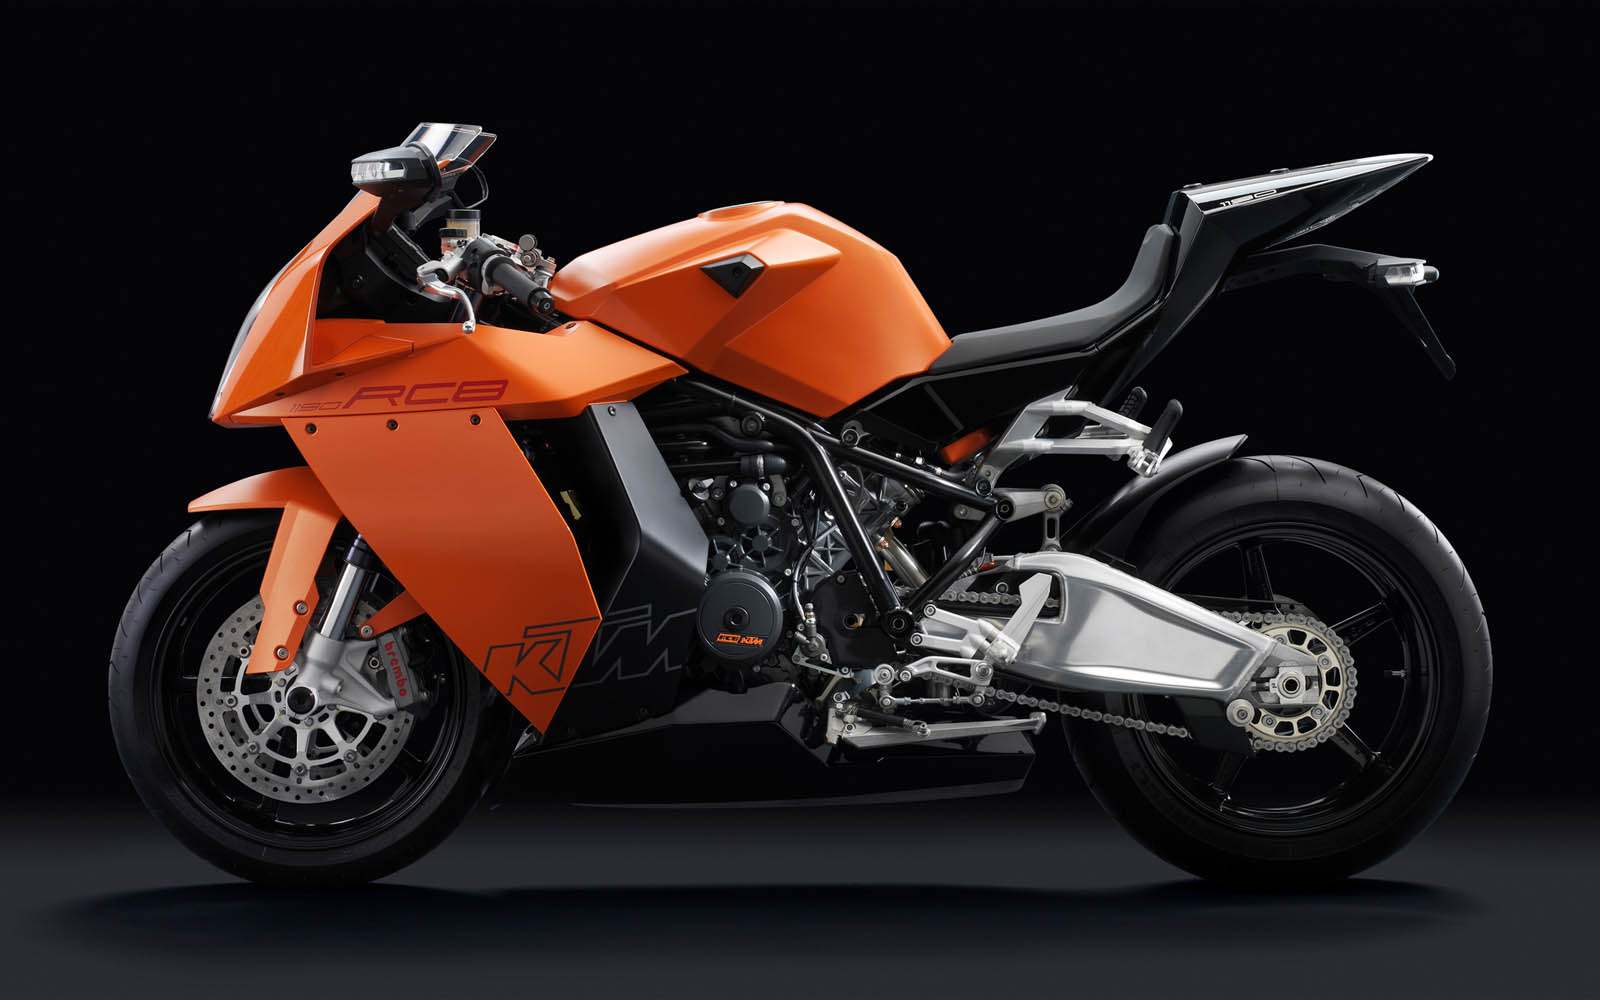 Rcb Hd Wallpapers Free Download Wallpapers Ktm Rc8 1190 Bike Wallpapers